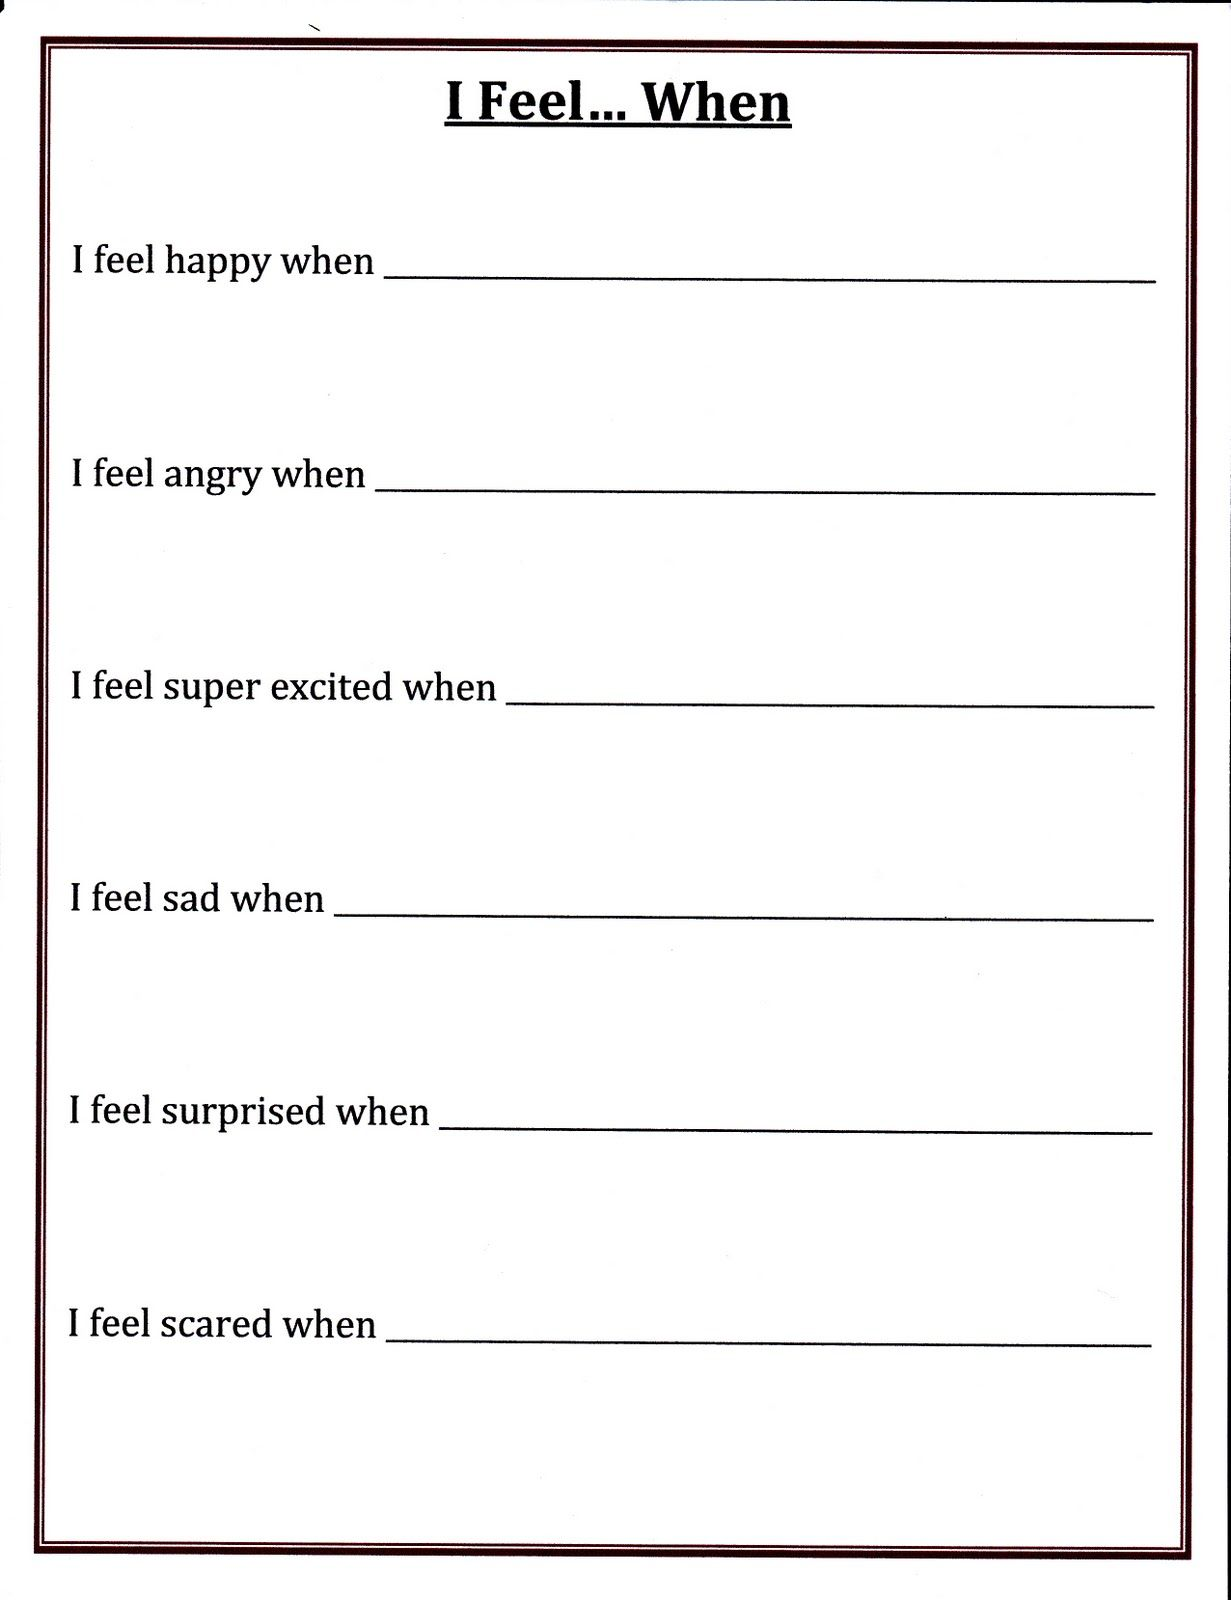 Worksheets Building Self Esteem Worksheets expressing yourself children do not always understand the range of coping with stress worksheets bing images